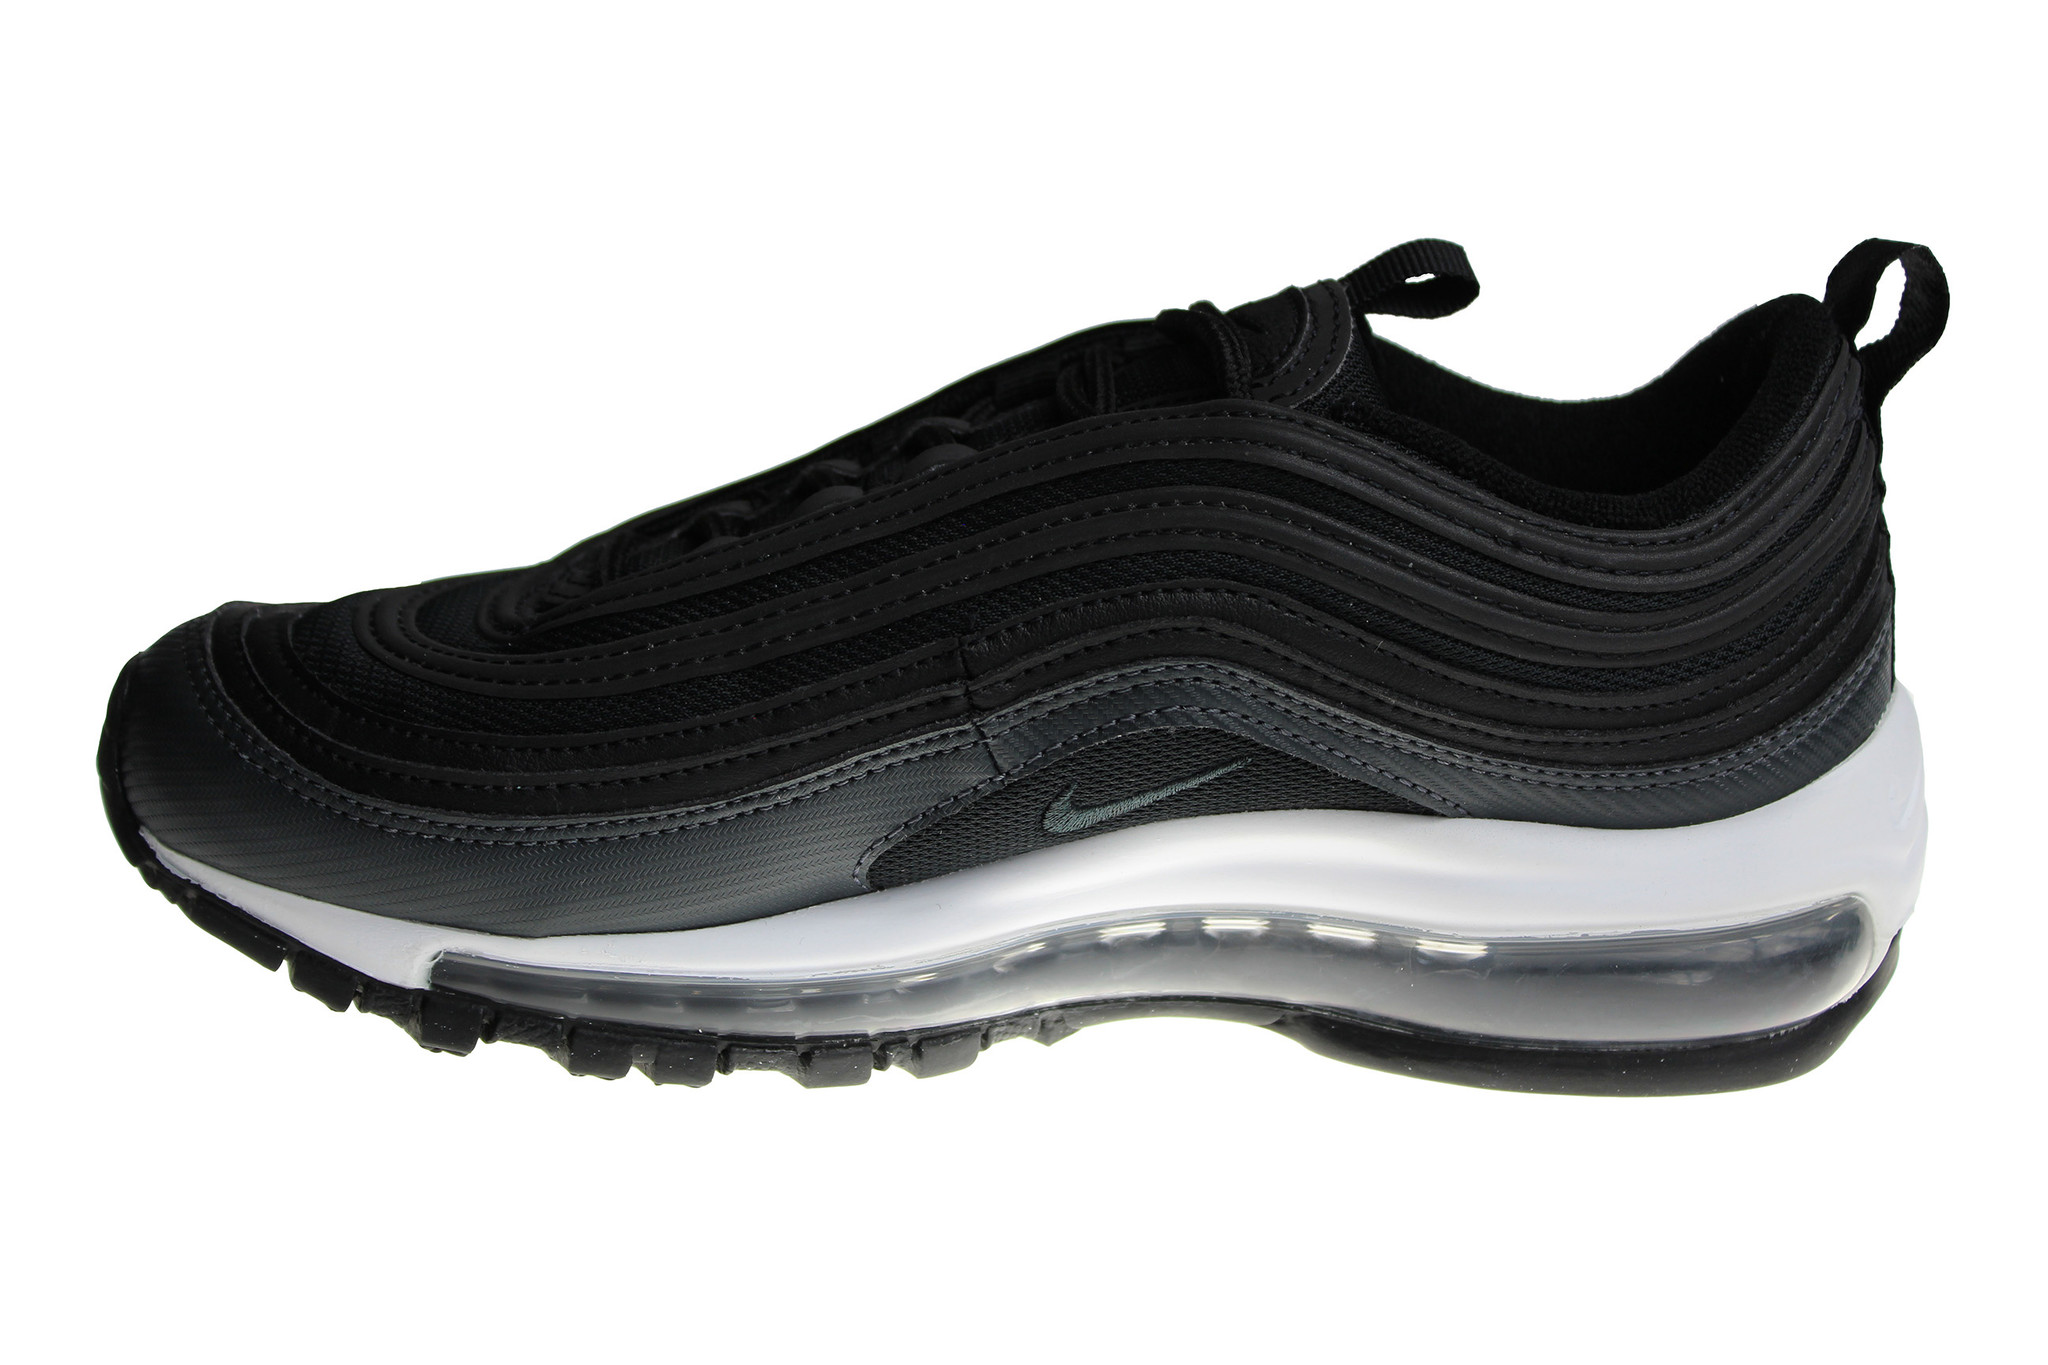 0199a69c74 Nike Air Max 97 EP (GS) Black/Anthracite/White BV0051 001 Juniors' Sneakers